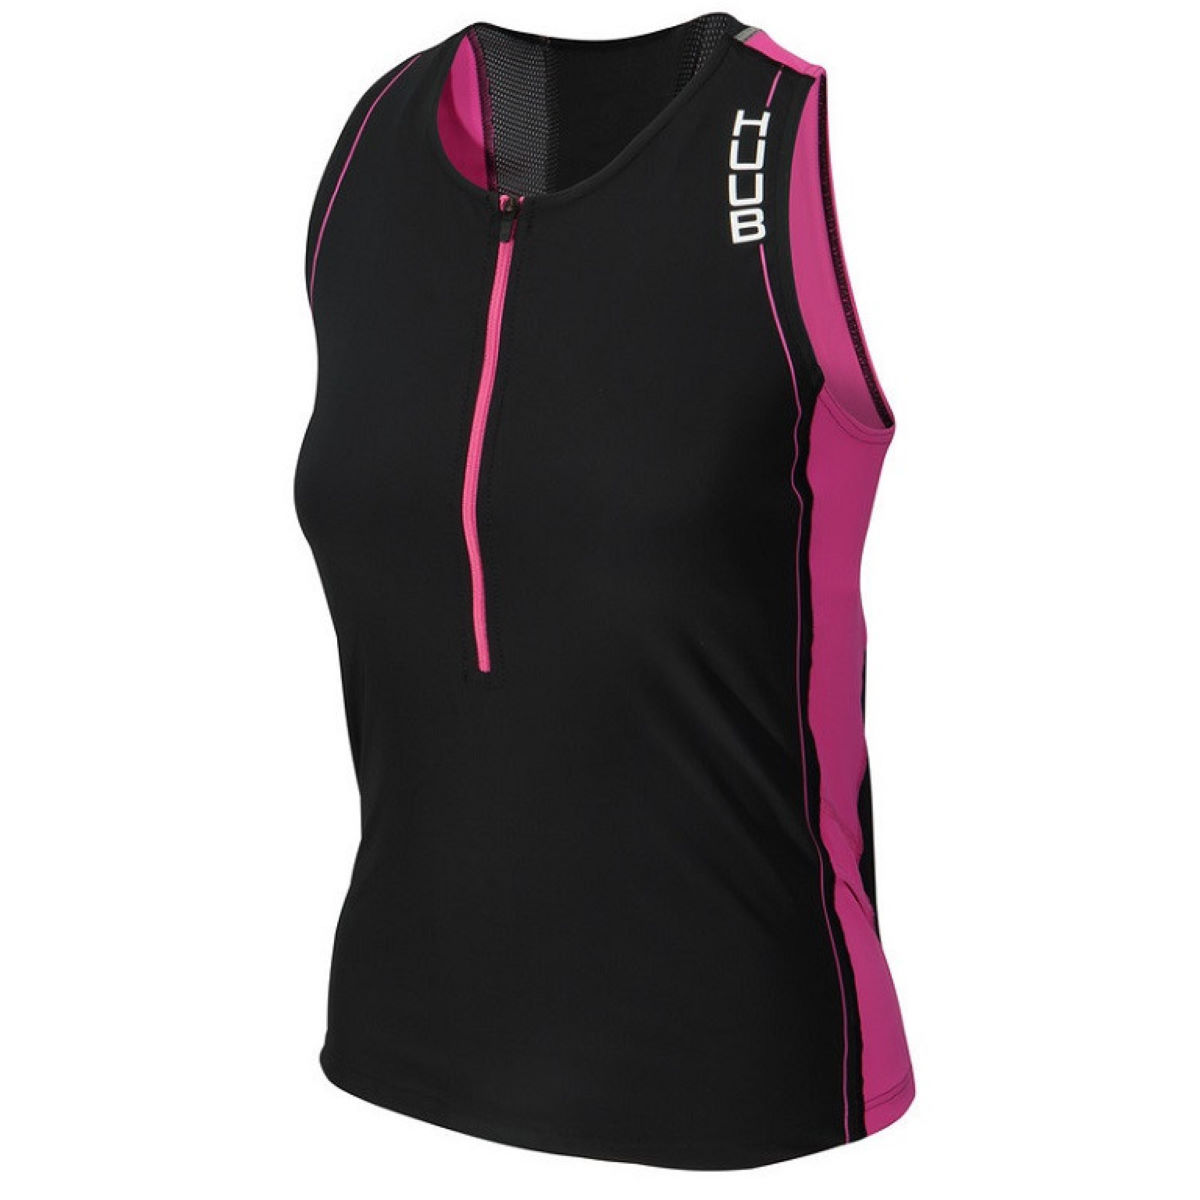 HUUB Women's Core Tri Top - Extra Extra Large Black | Tri Tops